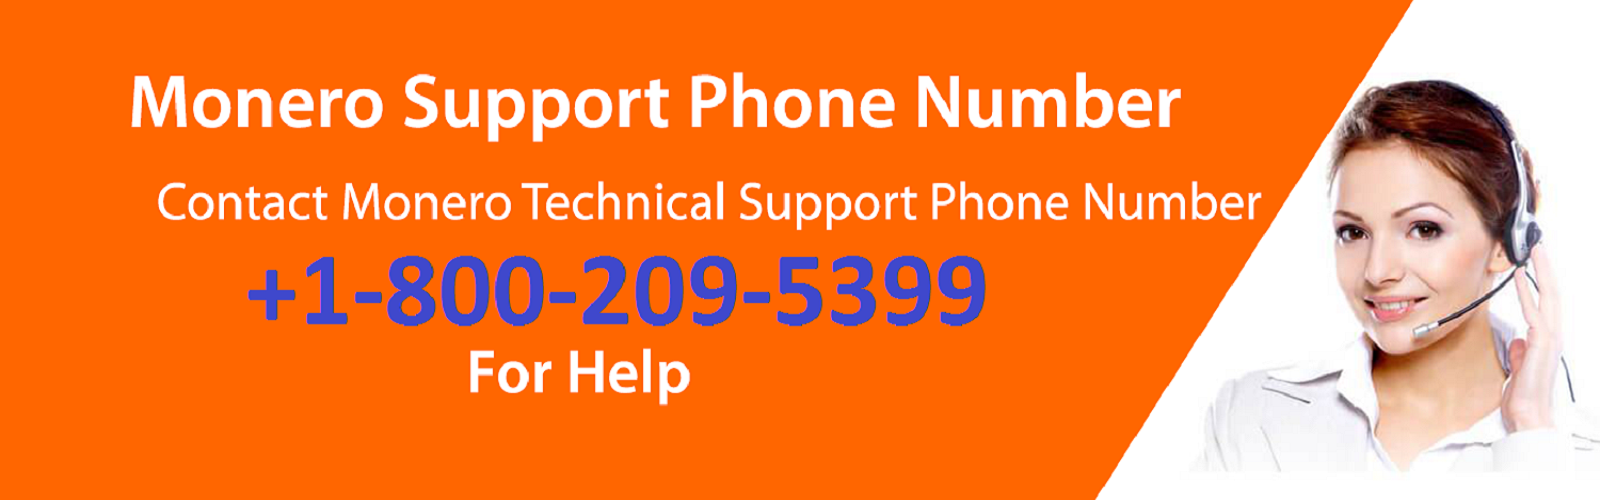 Monero Support Phone Number